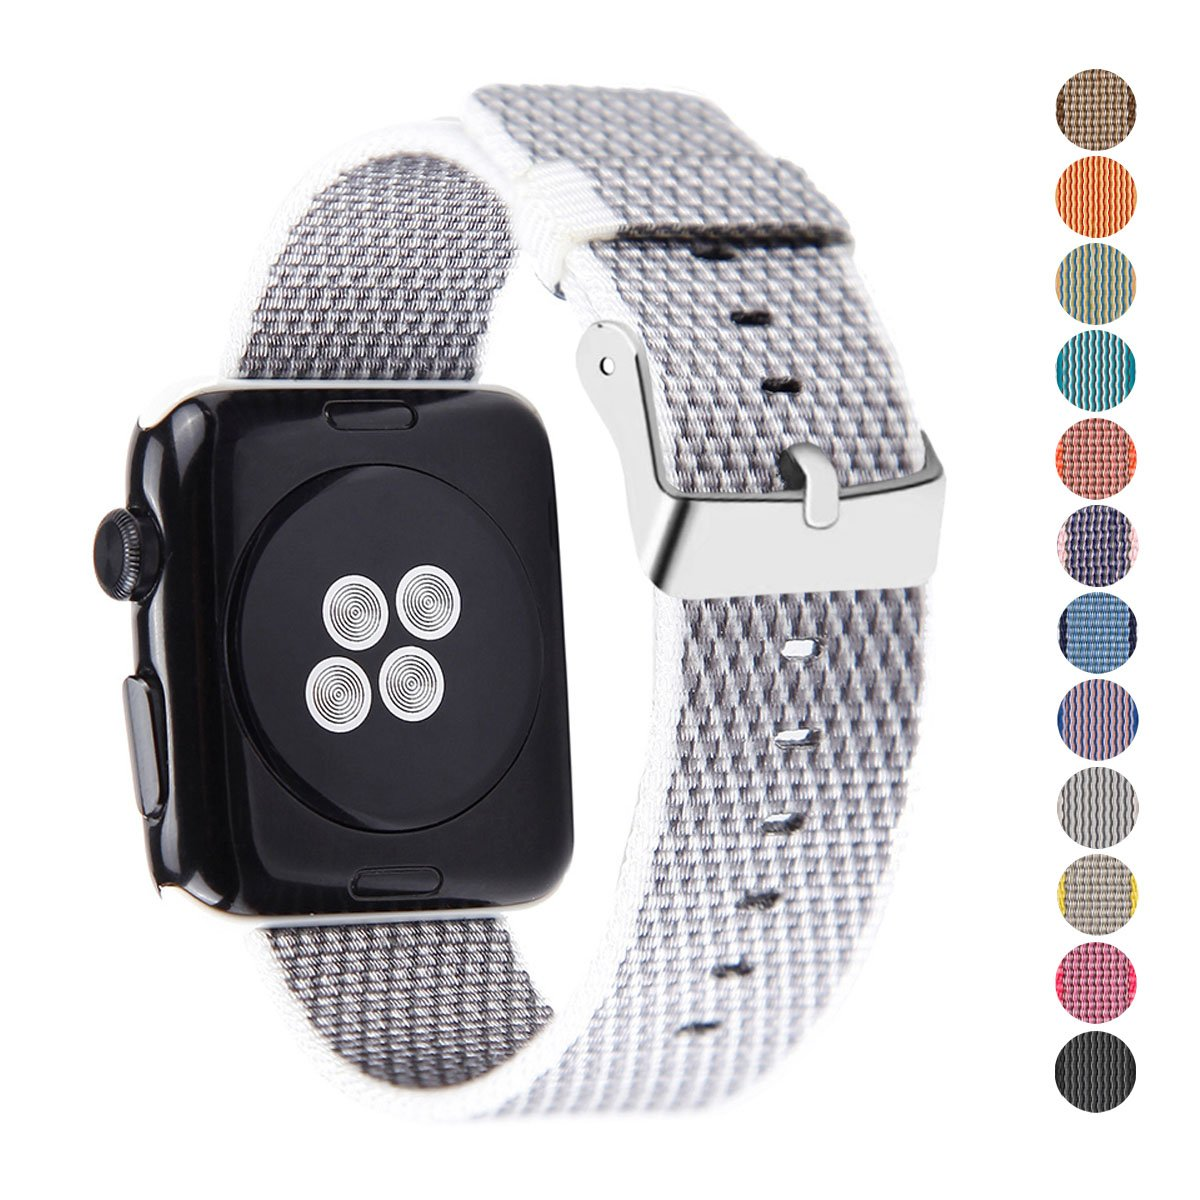 Pantheon Woven Nylon Replacement Band for the Apple Watch by, Women's or Men's, Strap fits the 38mm or 42mm for Apple iWatch 1, 2, 3 and Nike edition